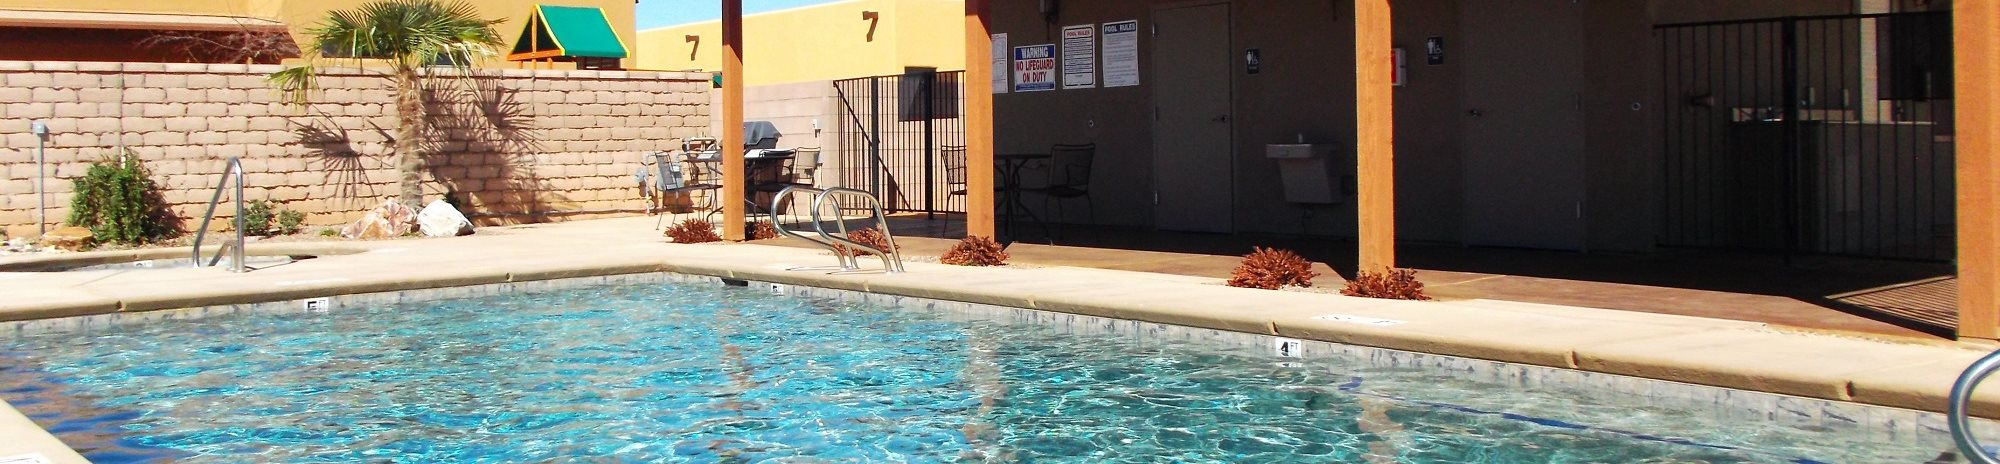 Community Pool & Pool Patio at Coronado Commons & Villas in Sierra Vista, AZ